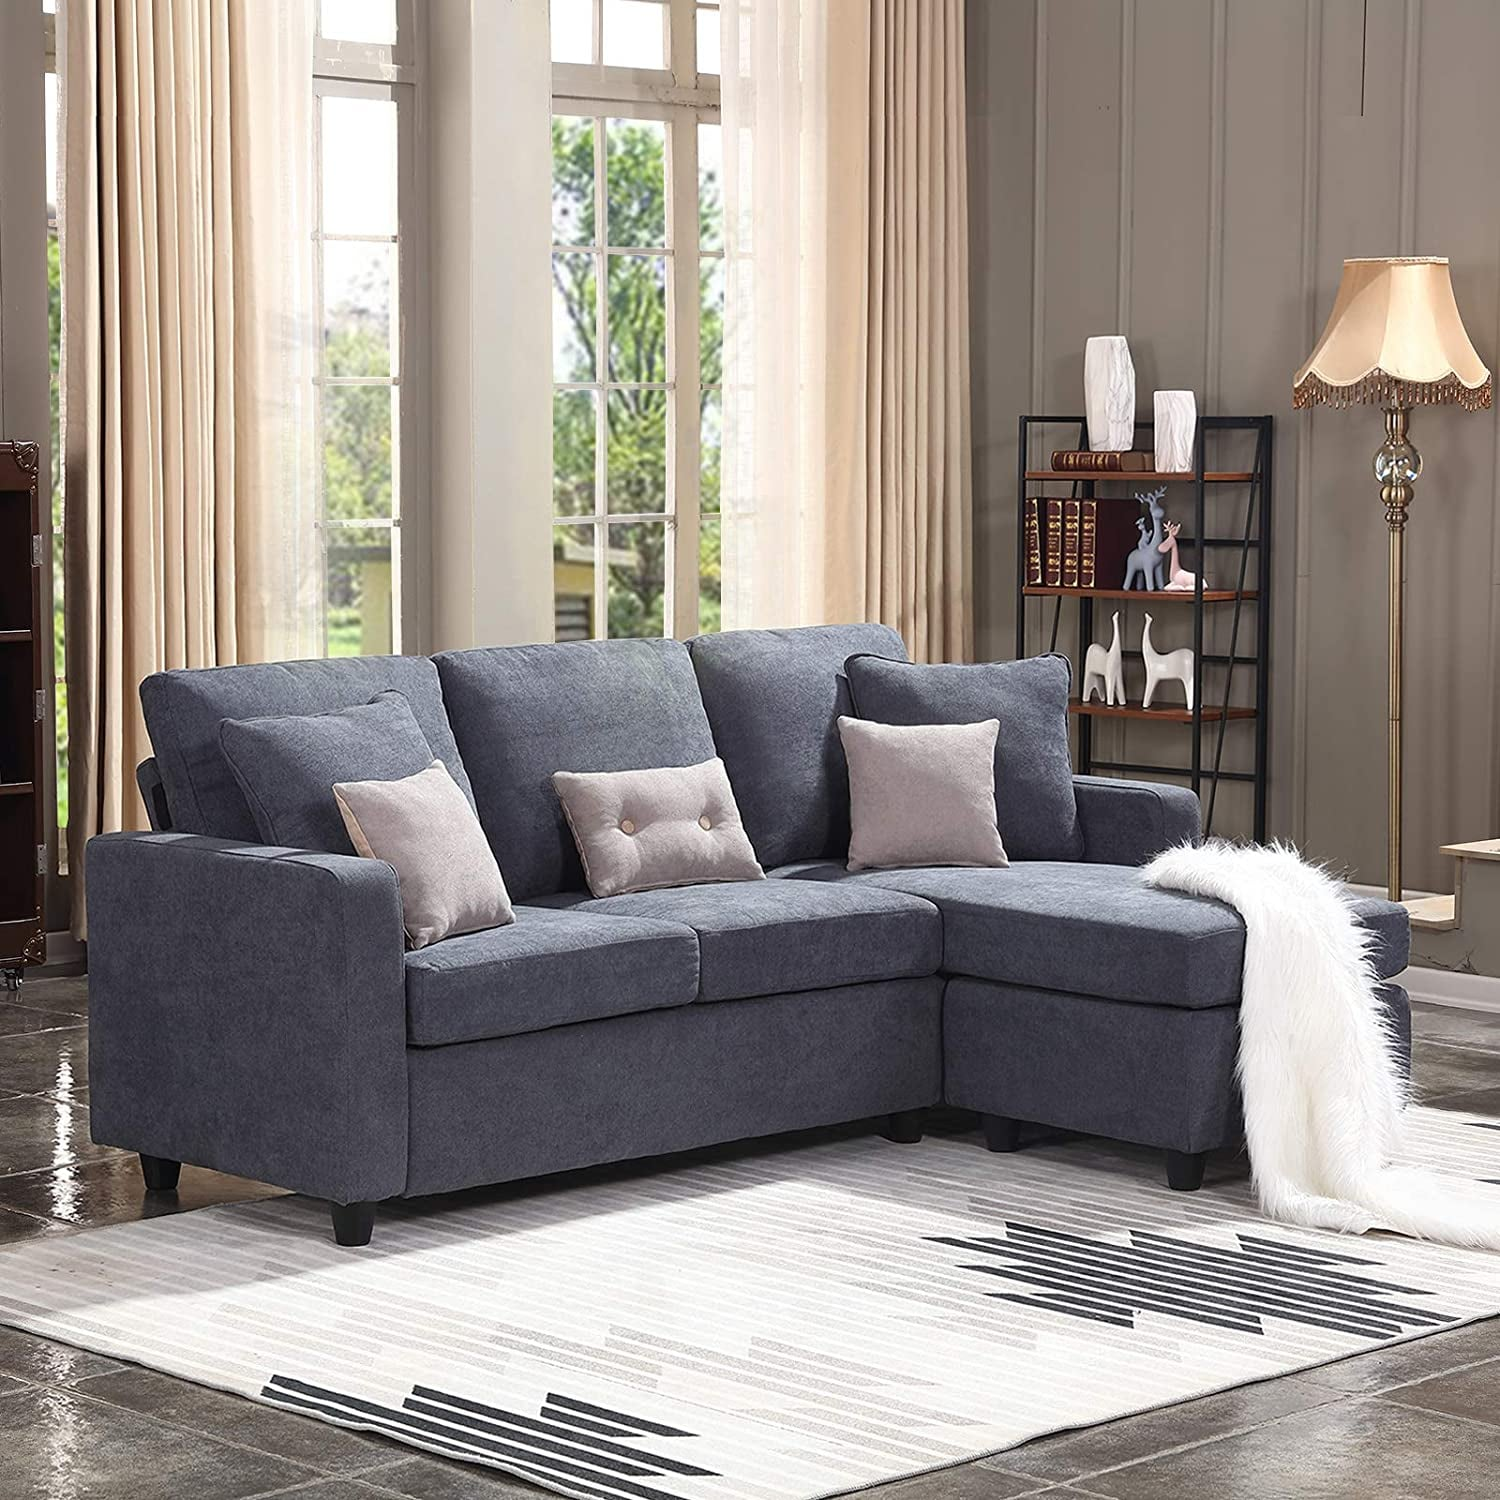 Best And Most Comfortable Modular Sofas 2021 Guide Popsugar Home